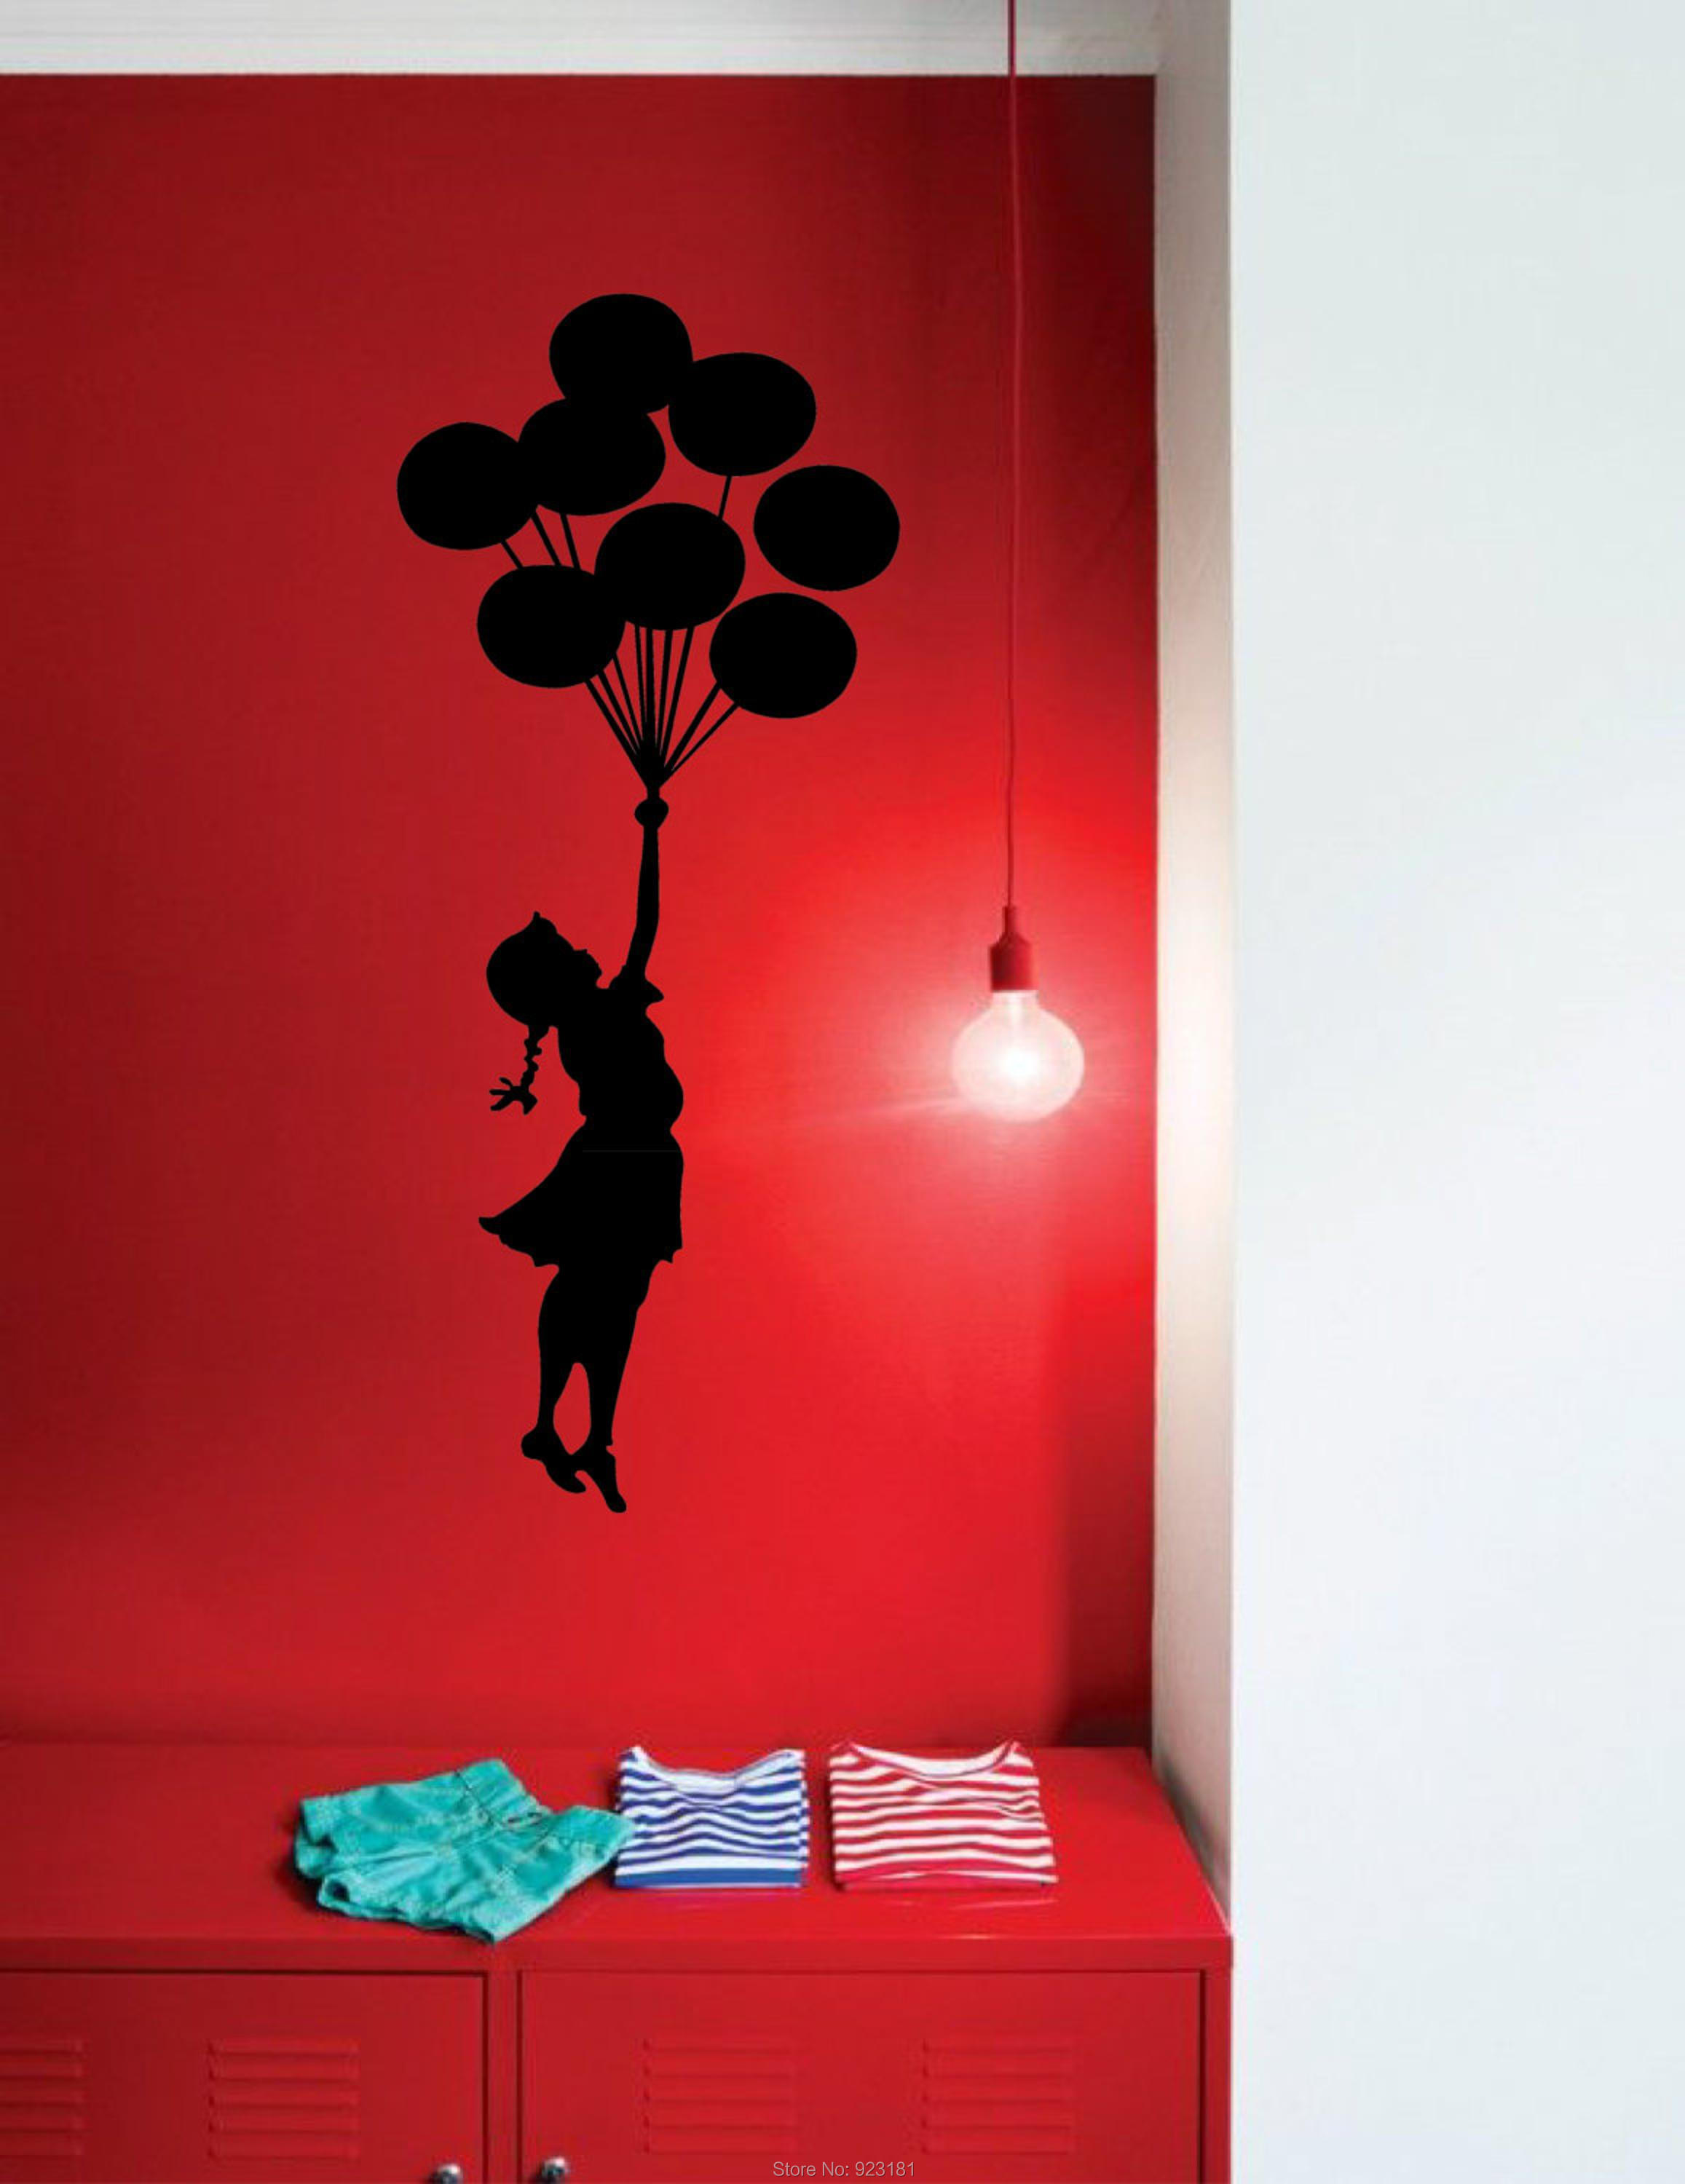 banksy bedroom wallpaper fujise us online buy wholesale banksy girl balloon from china banksy girl banksy bedroom